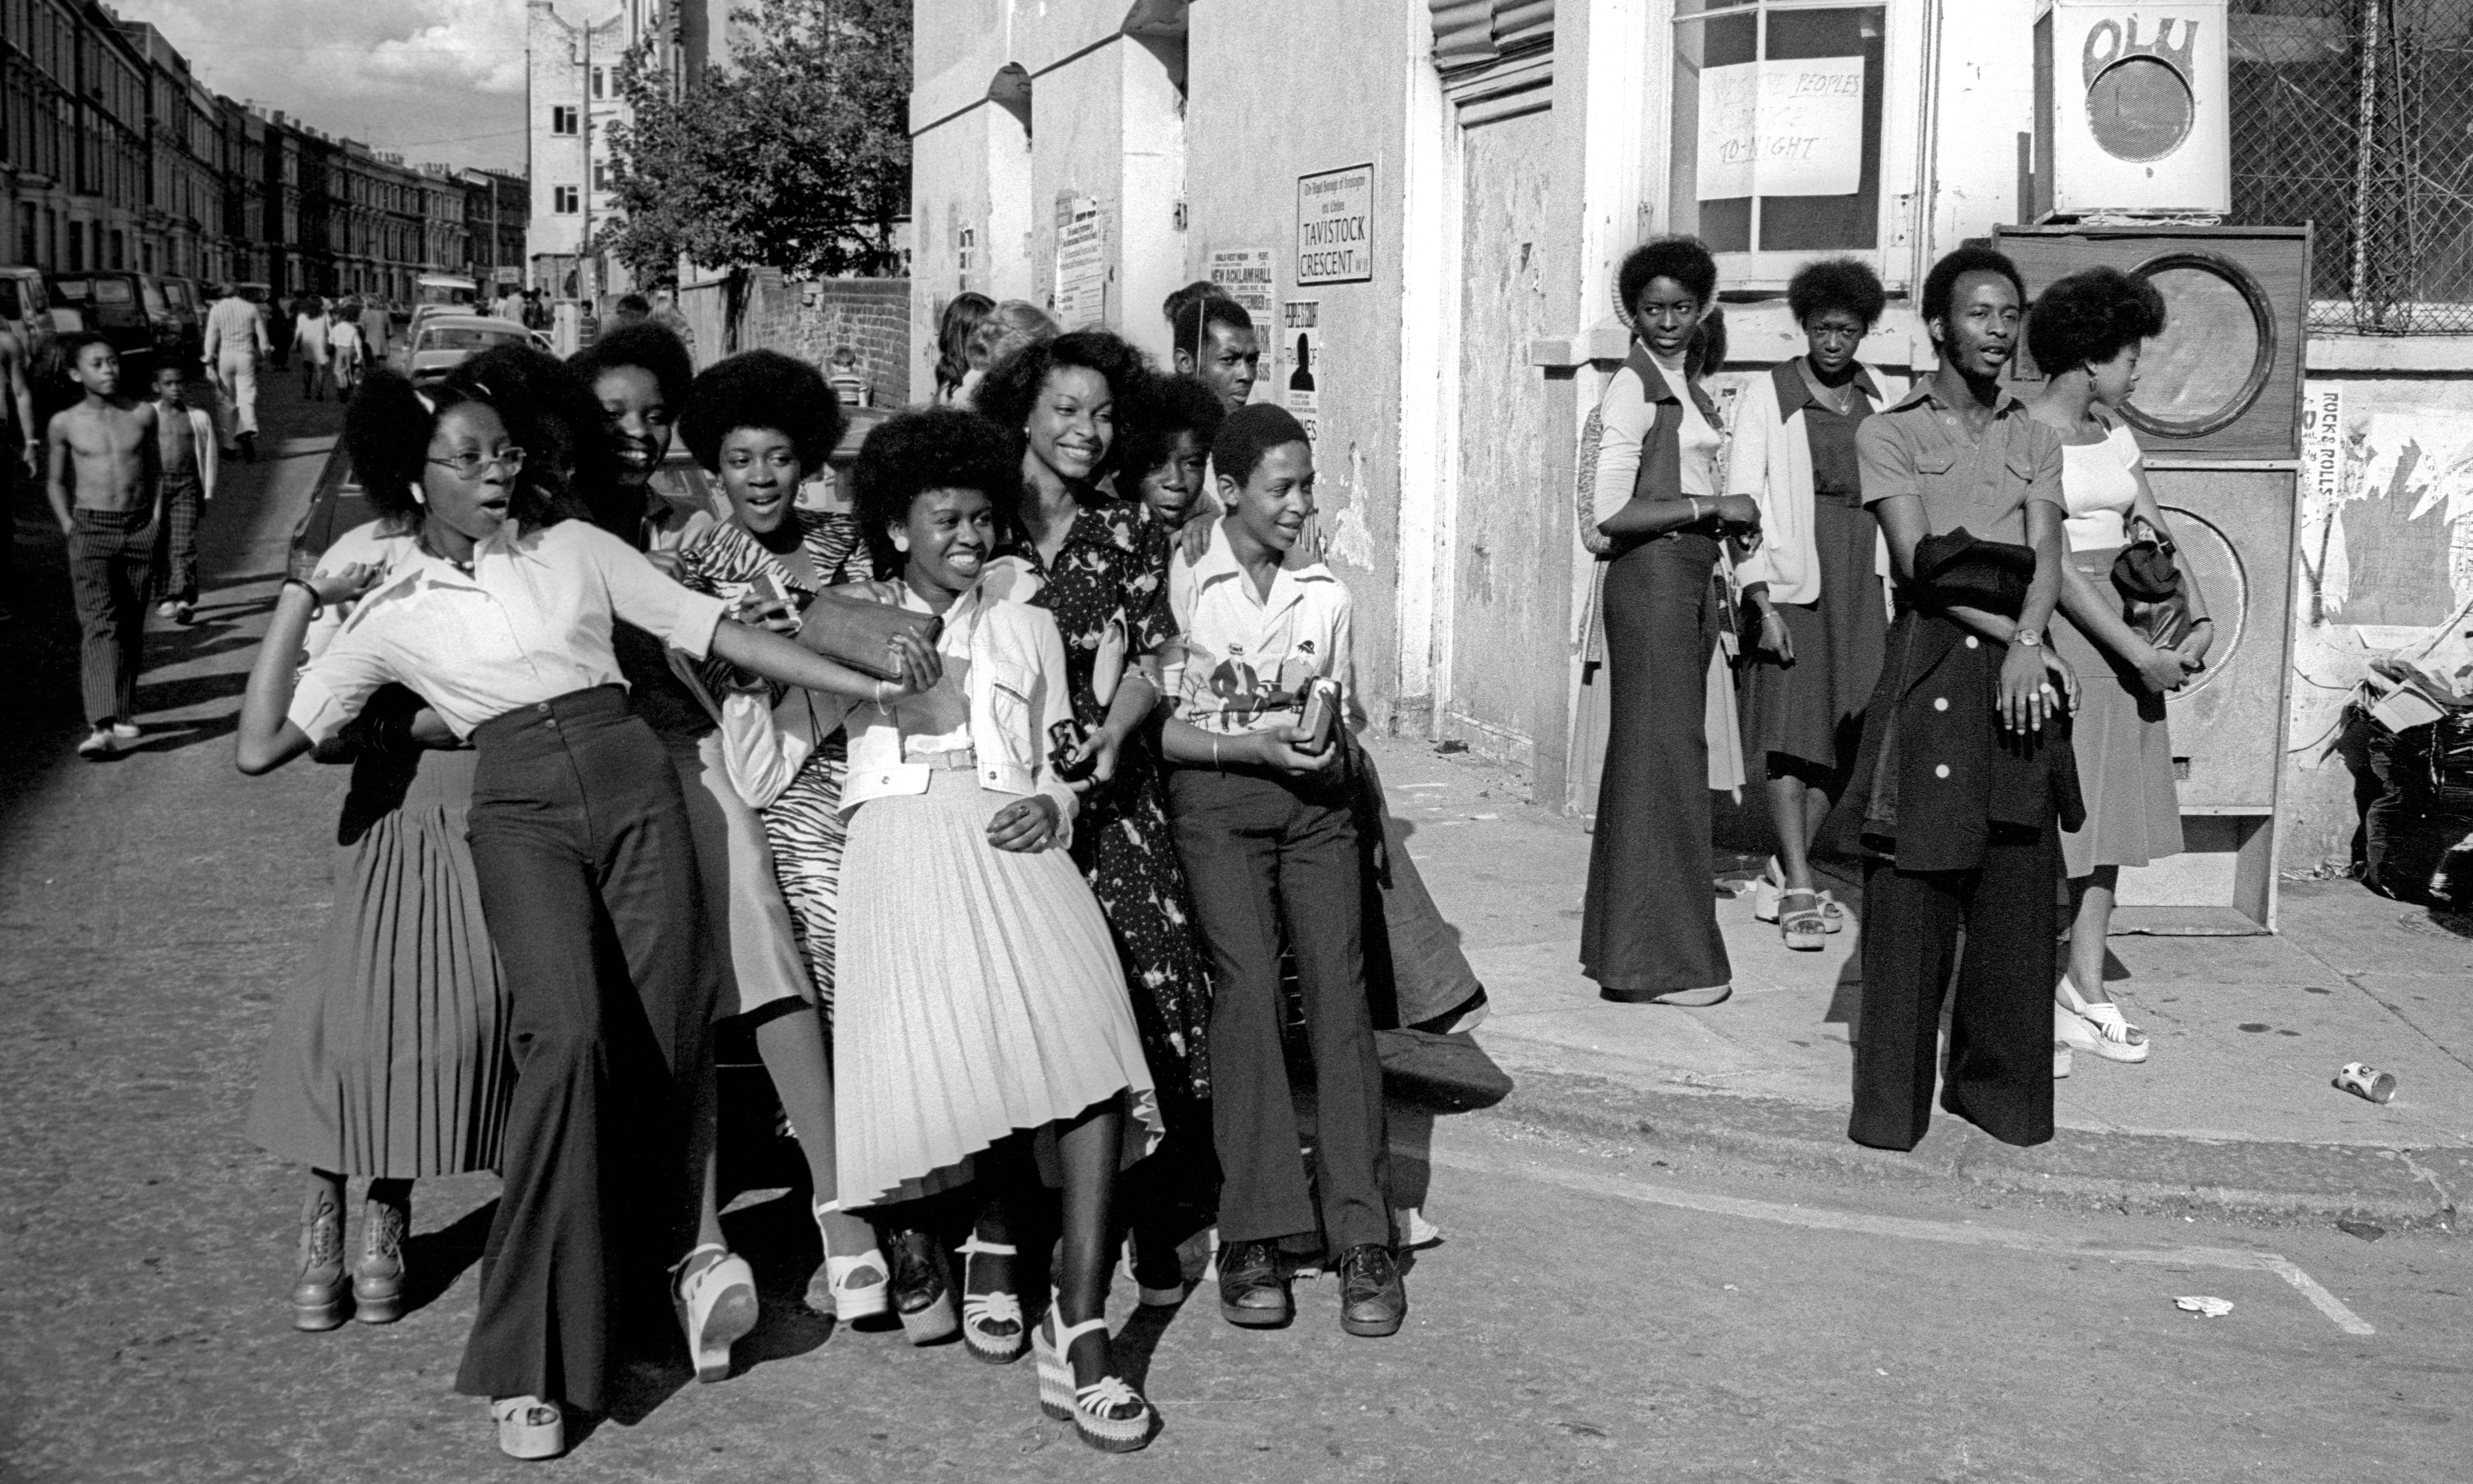 'Spice, sunshine and bassline': Notting Hill carnival's history – told through its greatest anthems